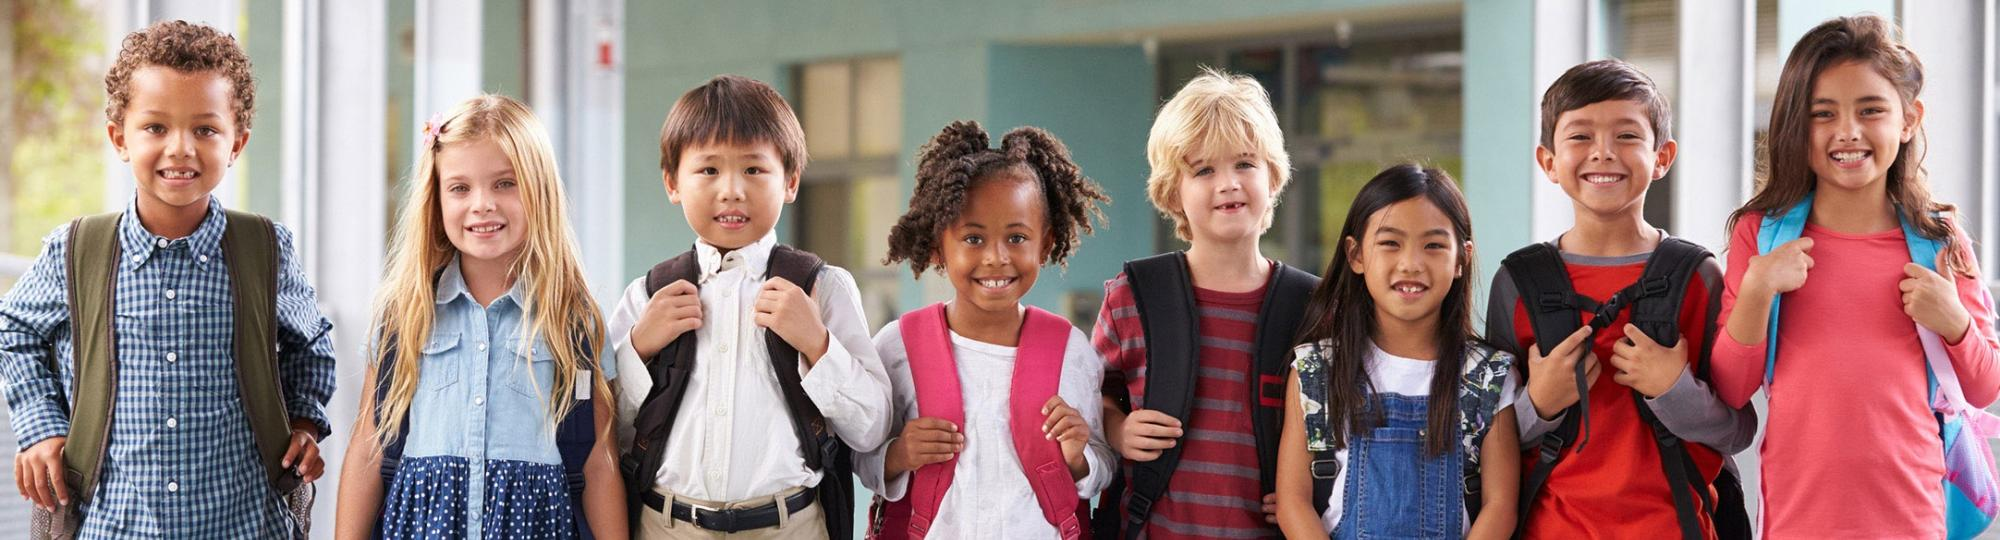 Smiling, ethnically diverse schoolchildren in colorful clothes and backpacks are lined up side by side